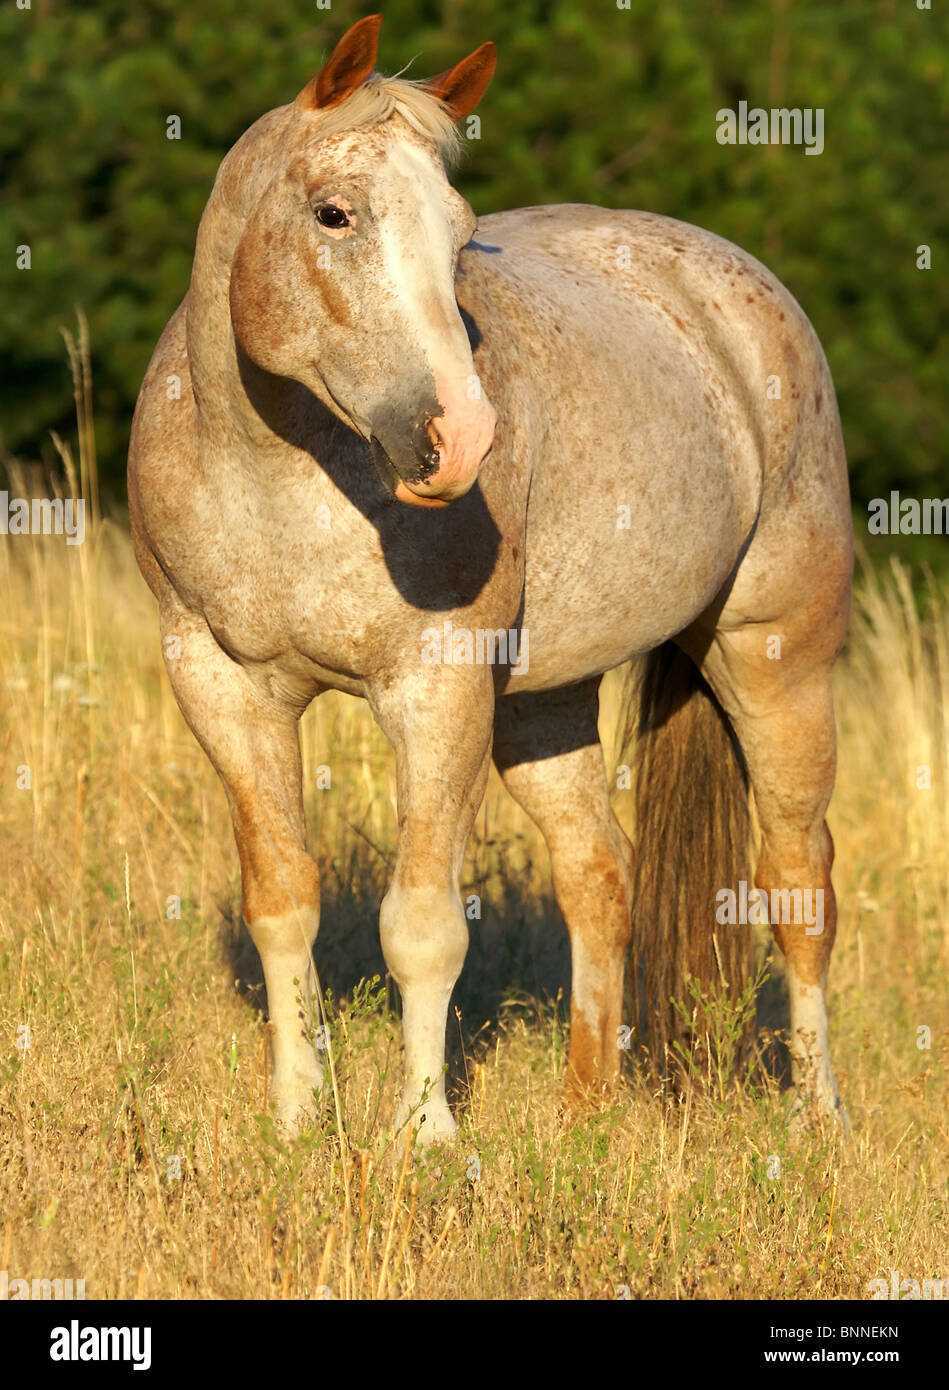 Pretty Horse Standing in Field Photo Stock